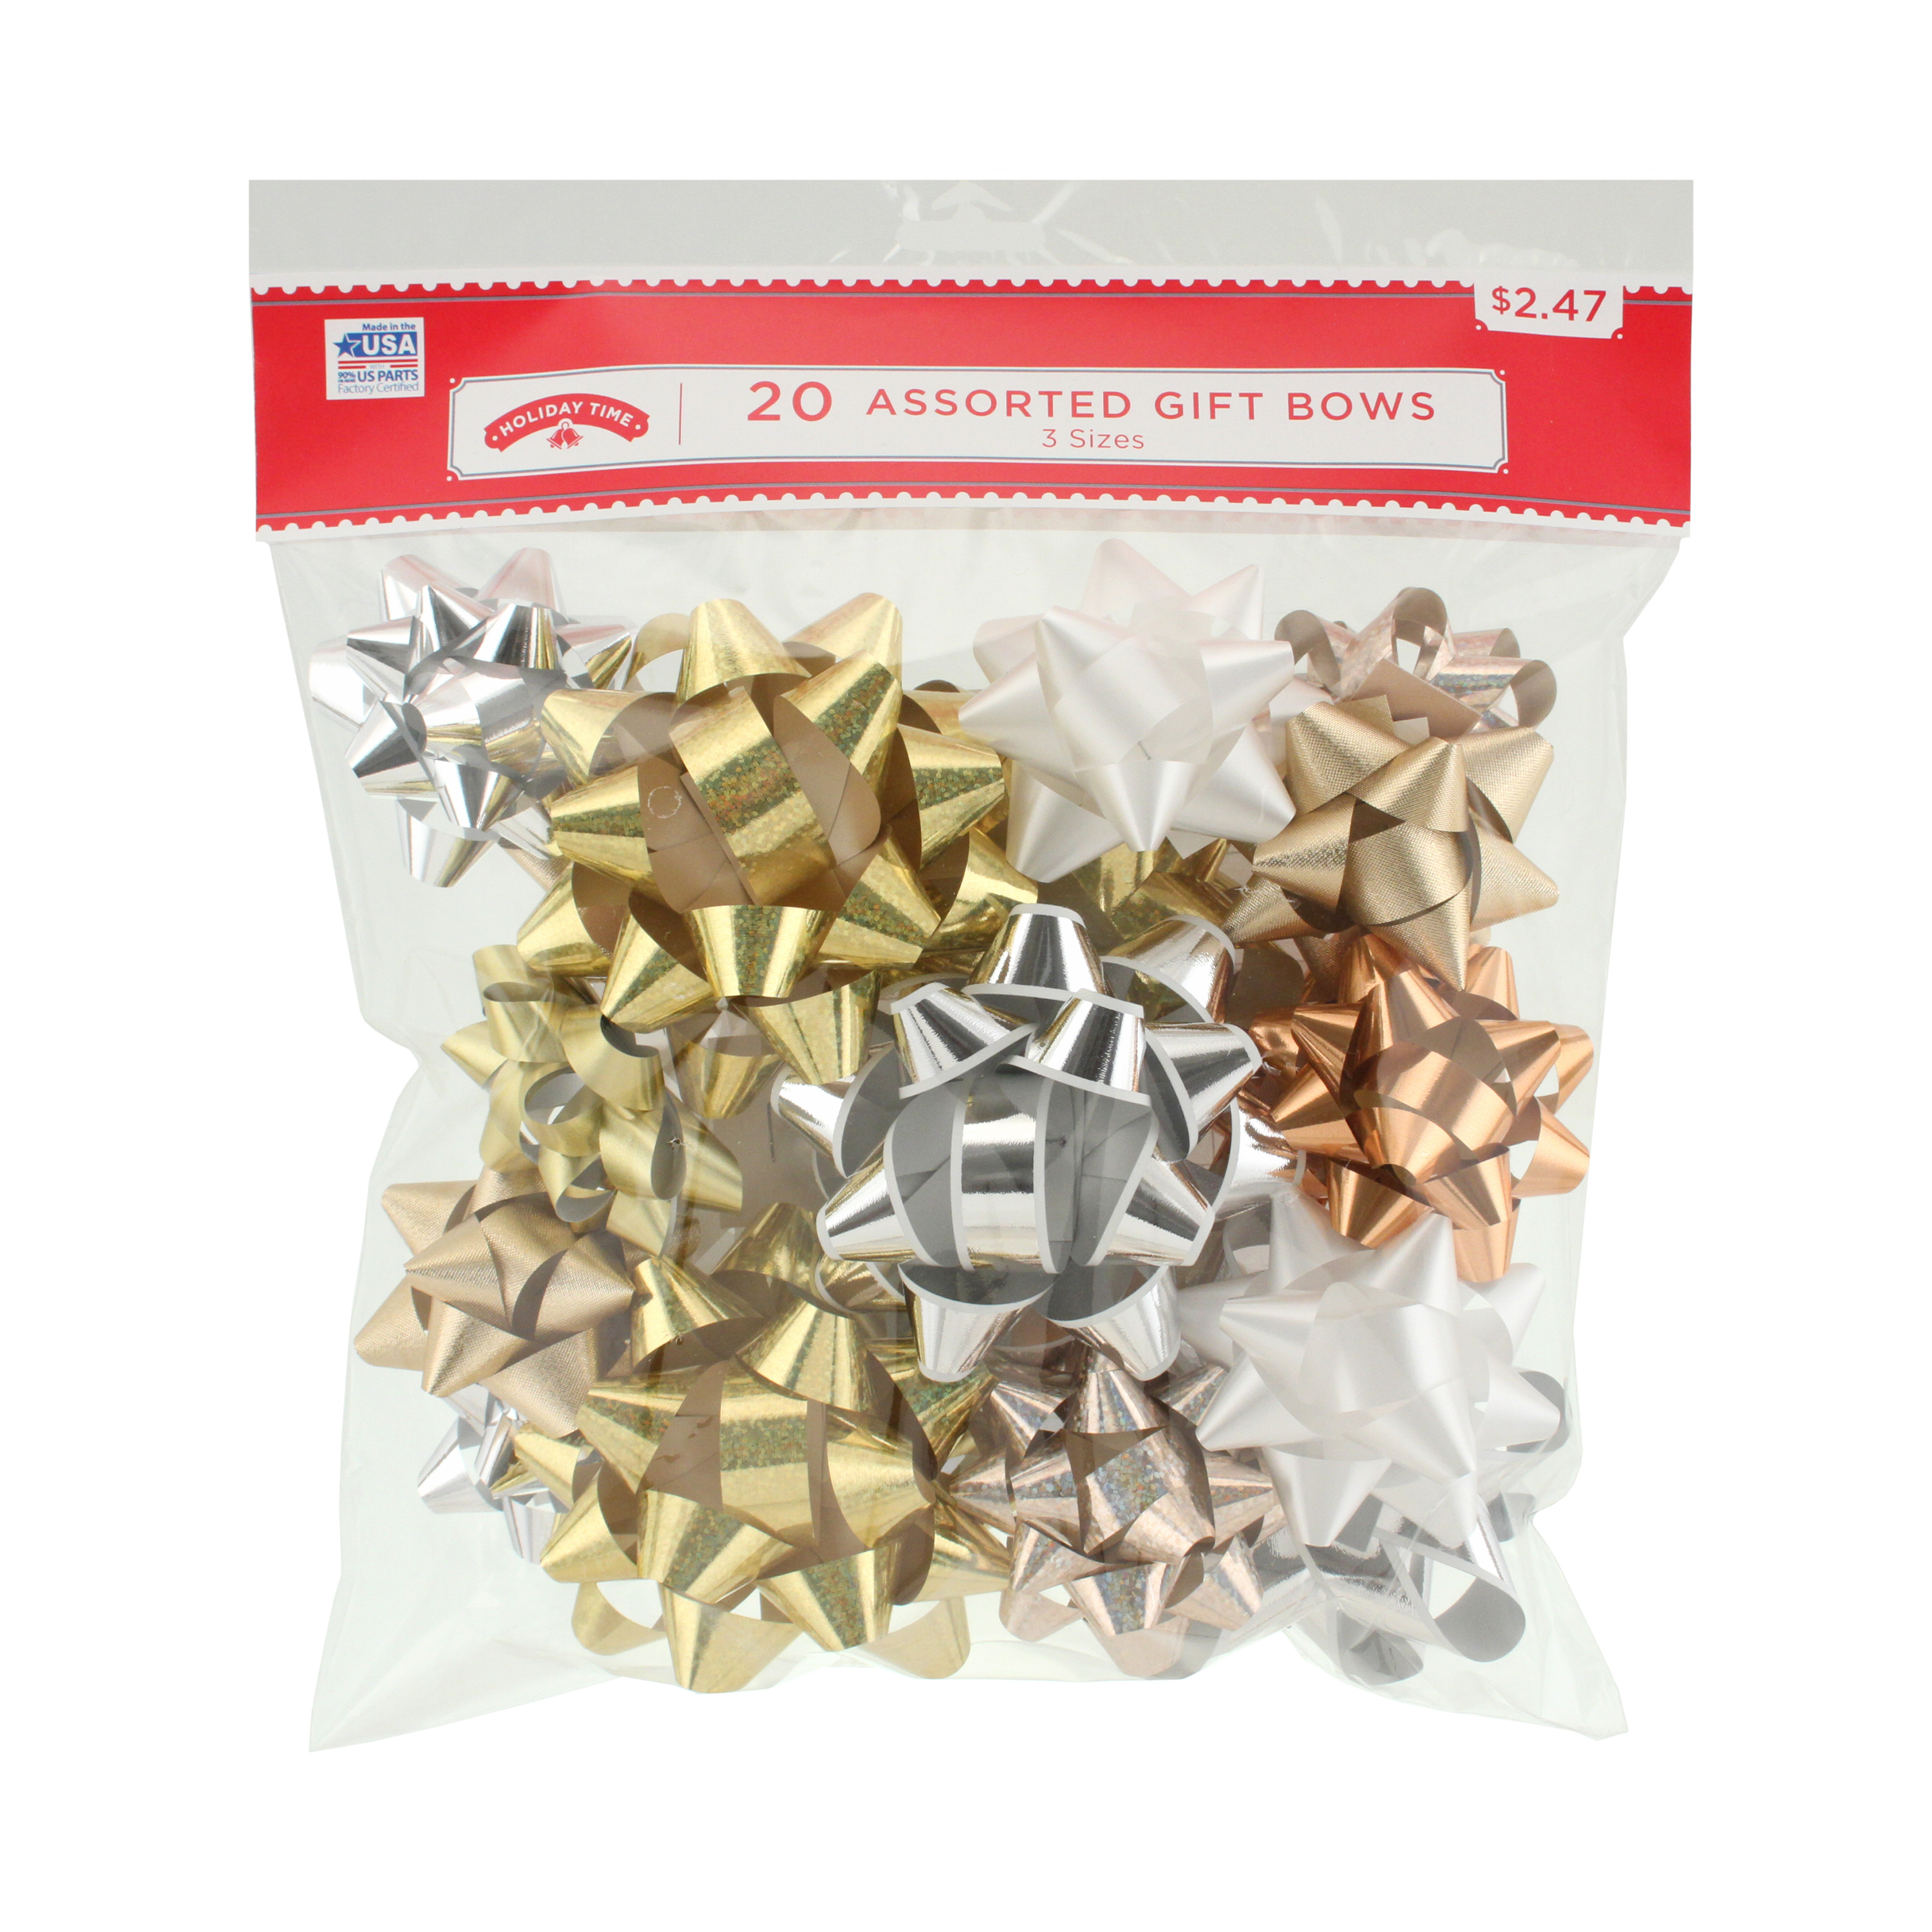 20 COUNT GIFT BOW ASSORTMENT - GOLD/SILVER